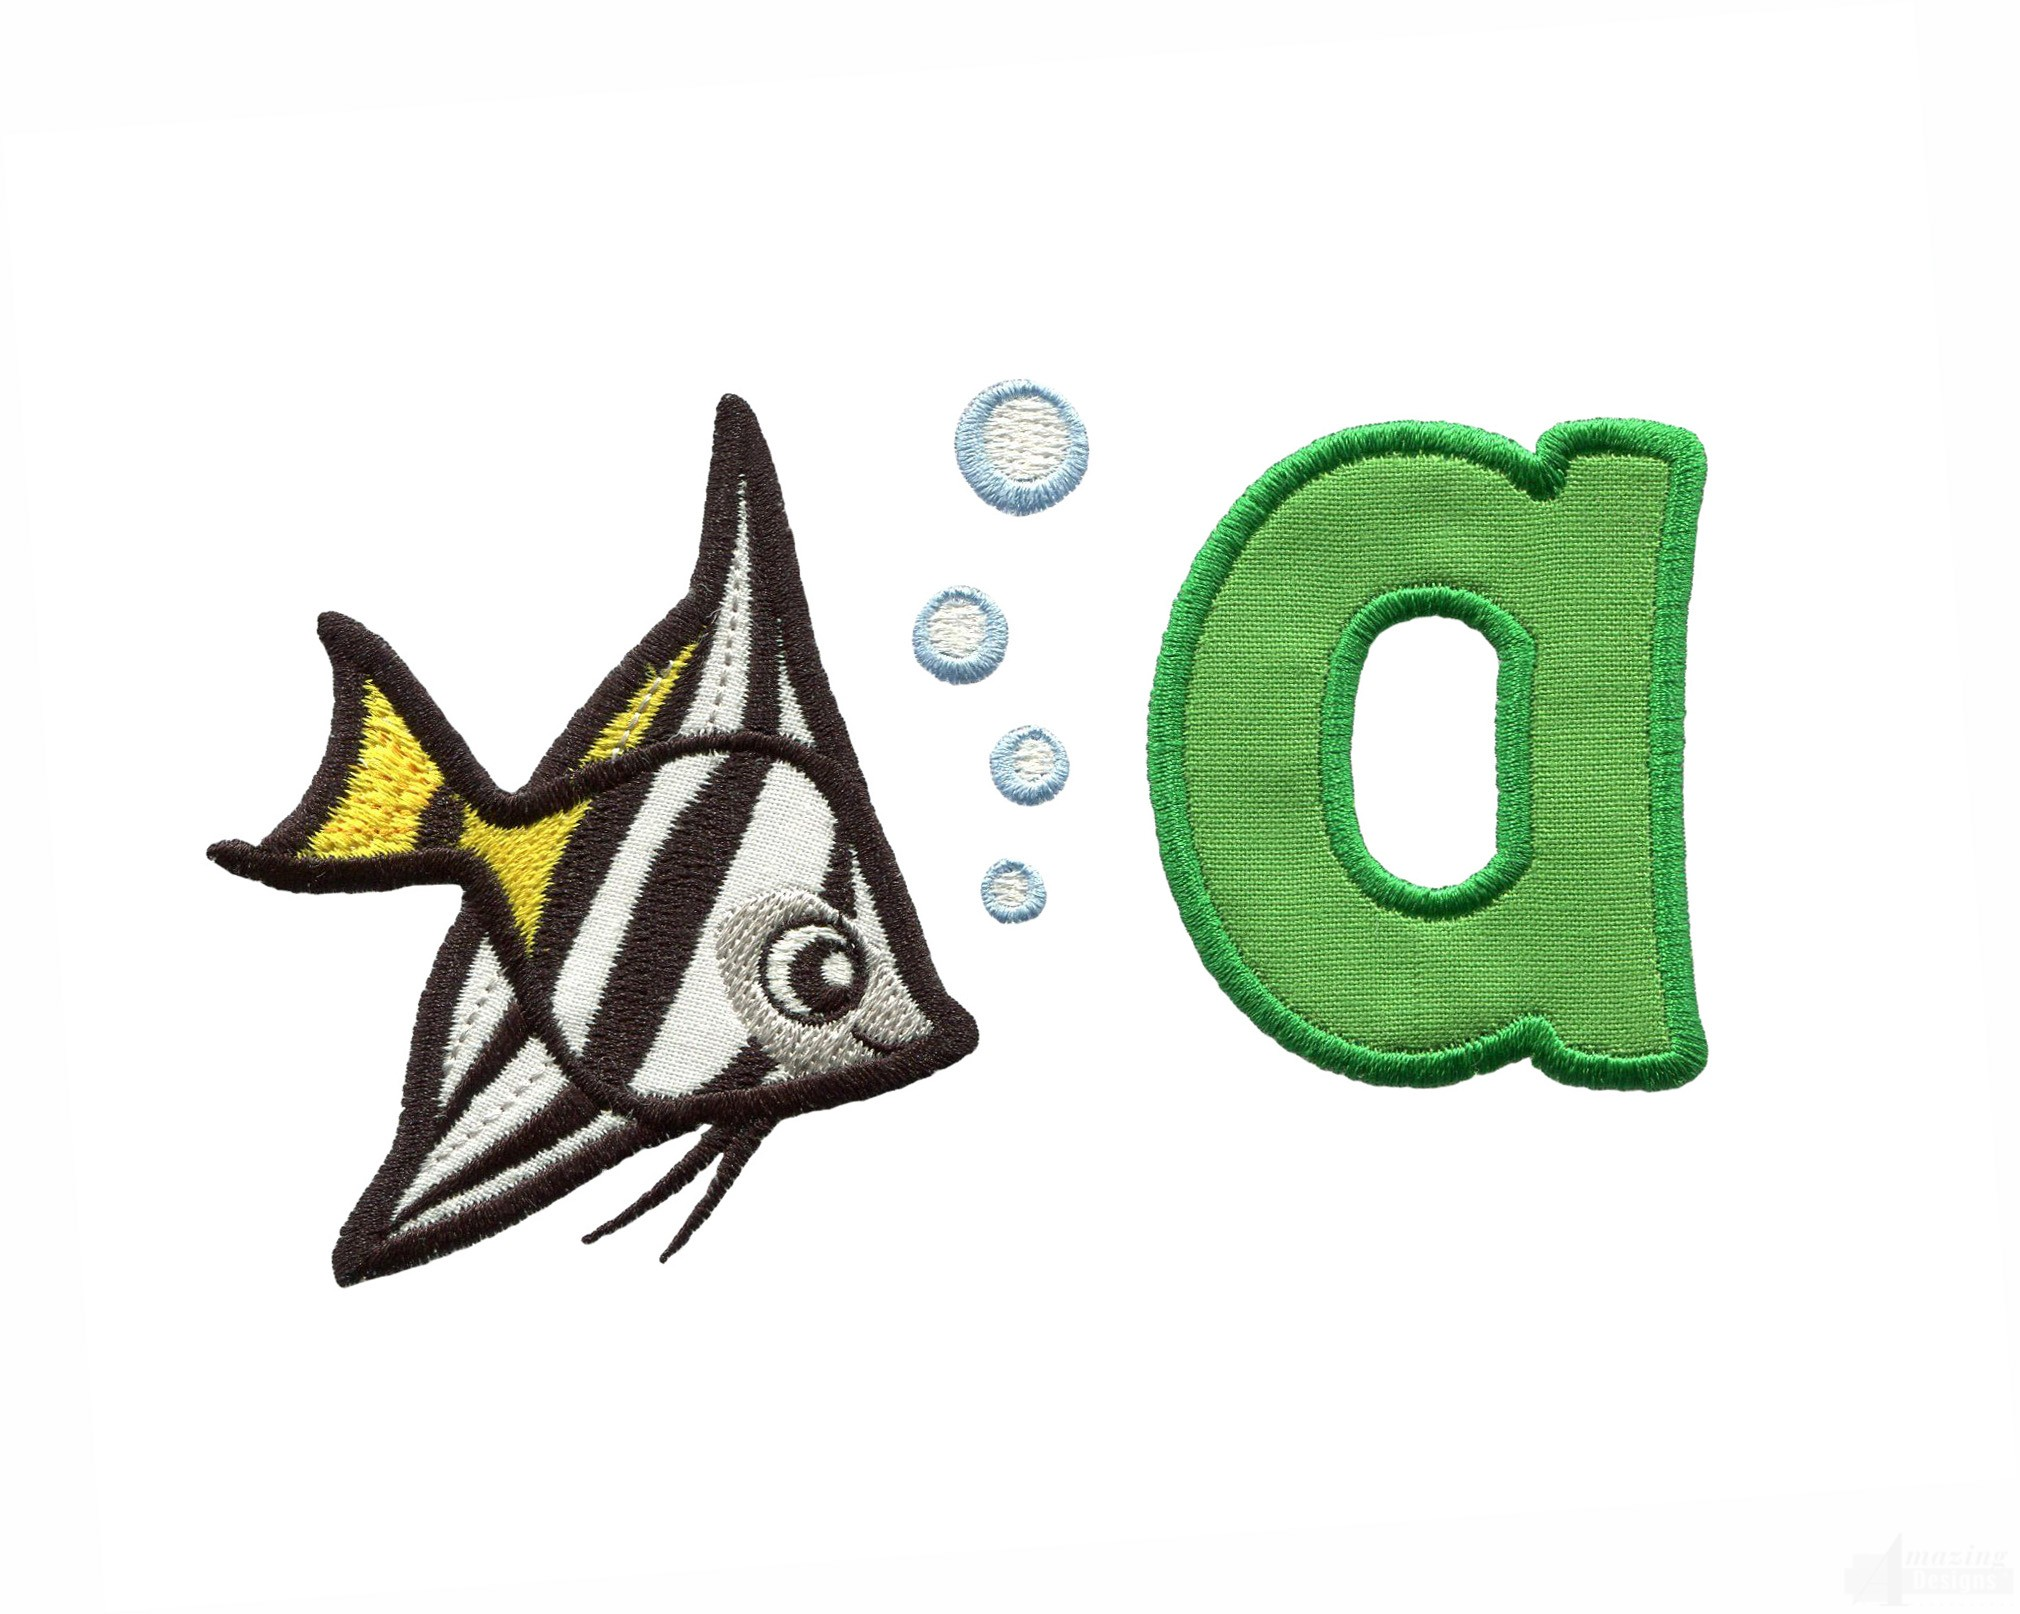 Applique a angelfish embroidery design